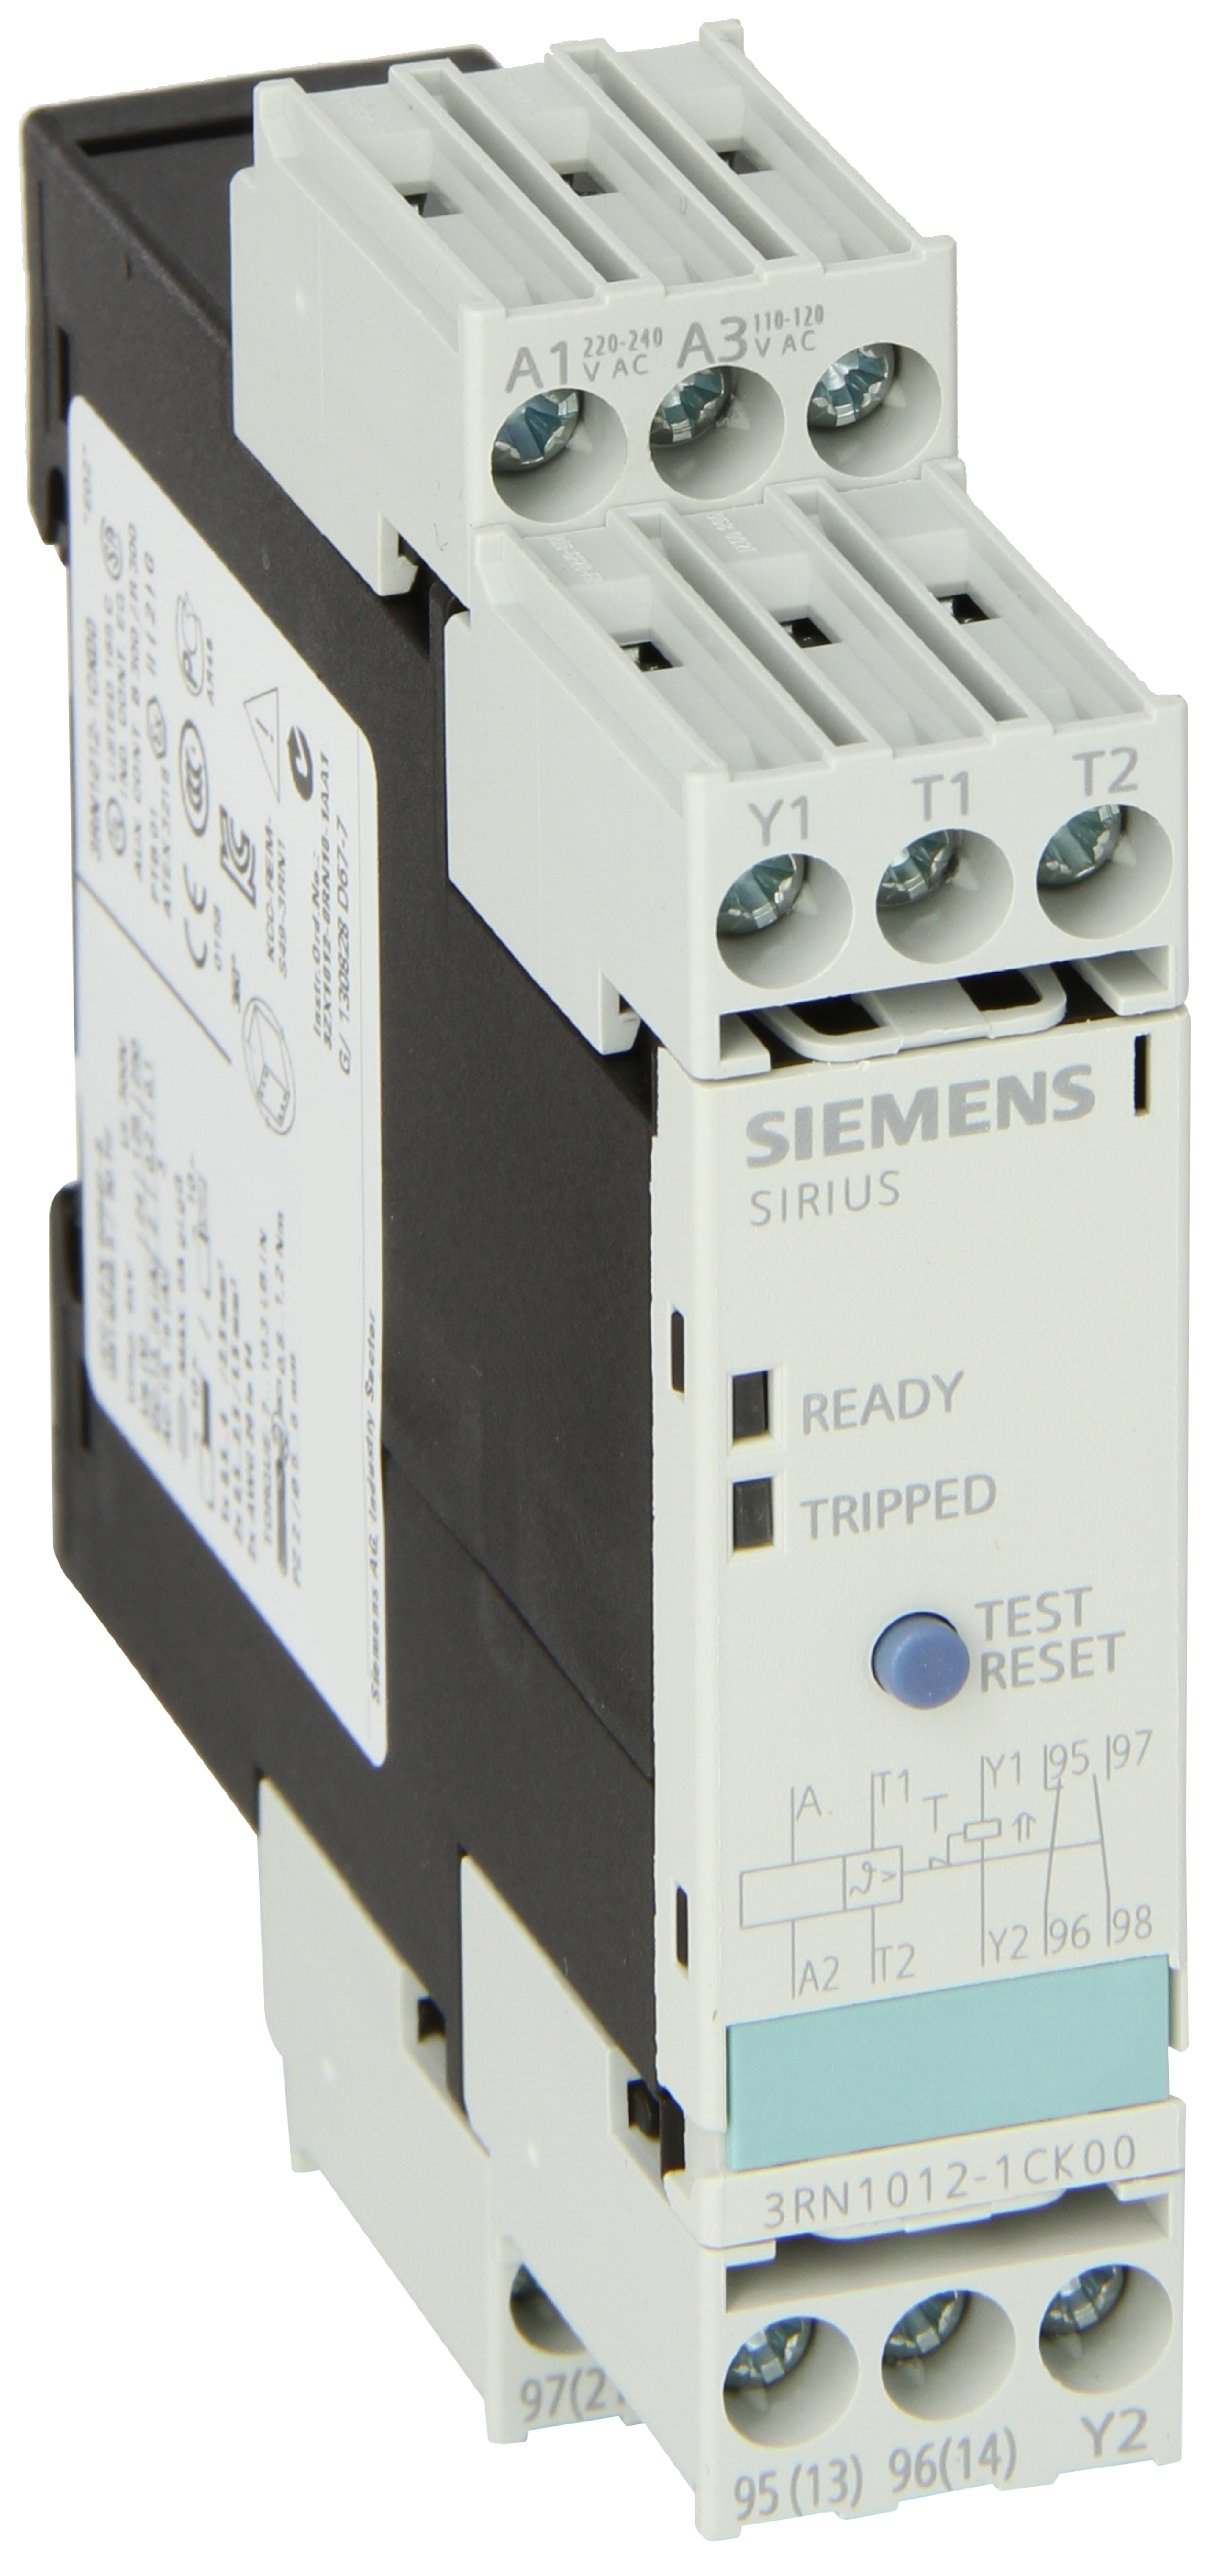 Siemens 3RN1012-1CK00 Thermistor Motor Protection Relay, Screw Terminal, Standard Evaluation Units, 2 LEDs, 22.5mm Width, Manual/Auto/Remote Reset, 1 N + 1 NC Contacts, 110/230VAC Control Supply Voltage by SIEMENS